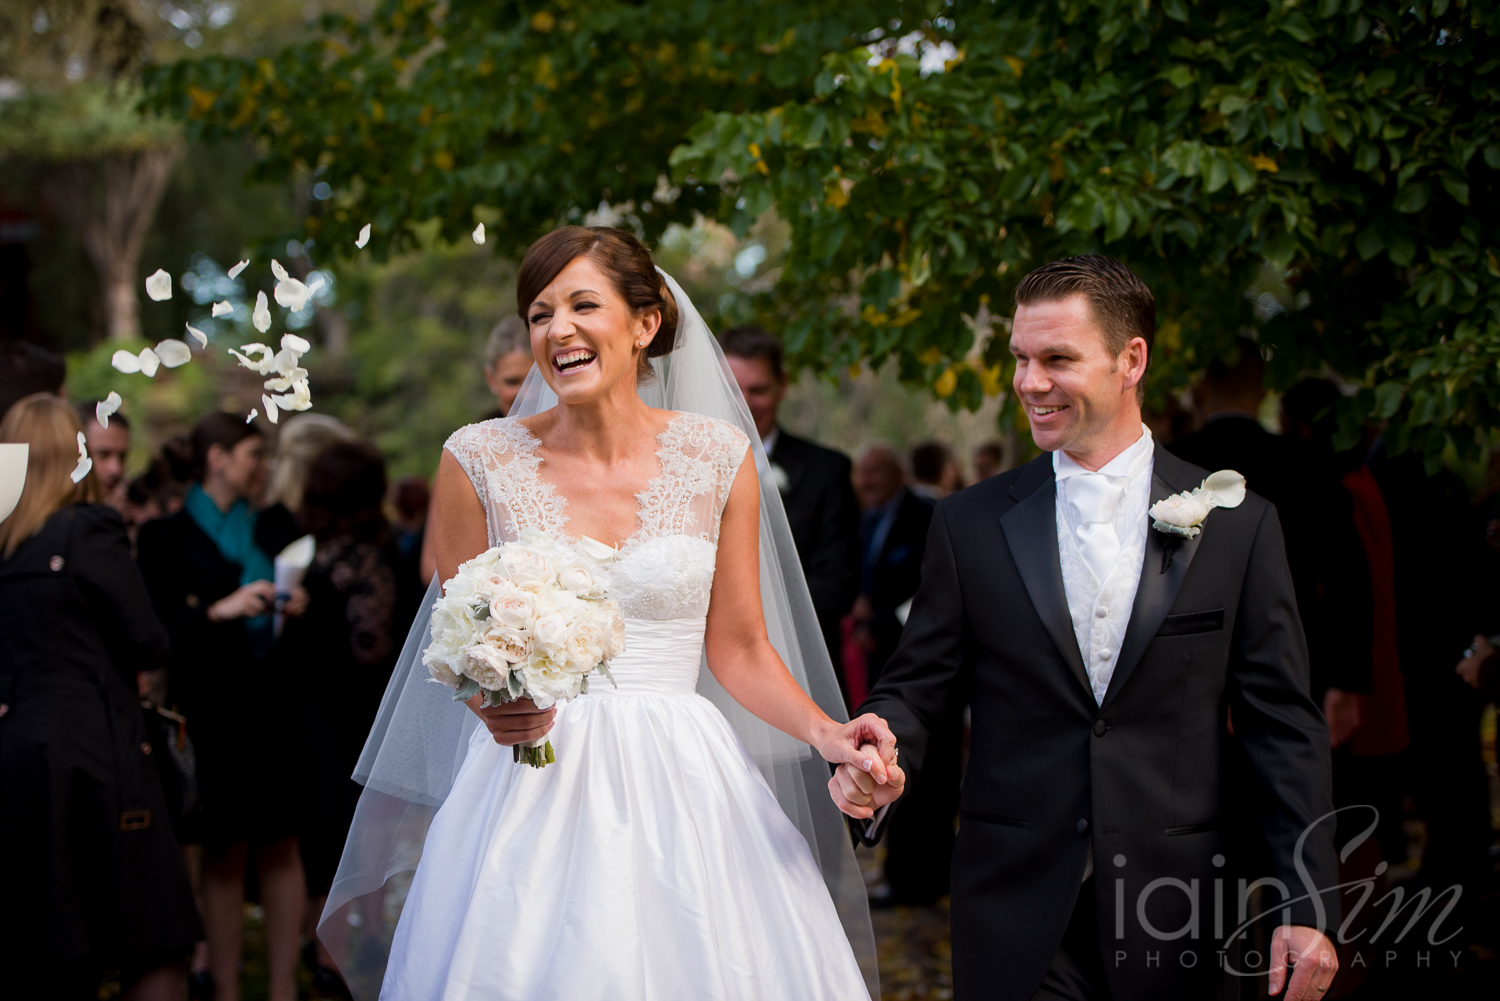 wpid-Katherine-and-Marks-RipponLea-Wedding-by-Iain-Sim-Photography_020.jpg